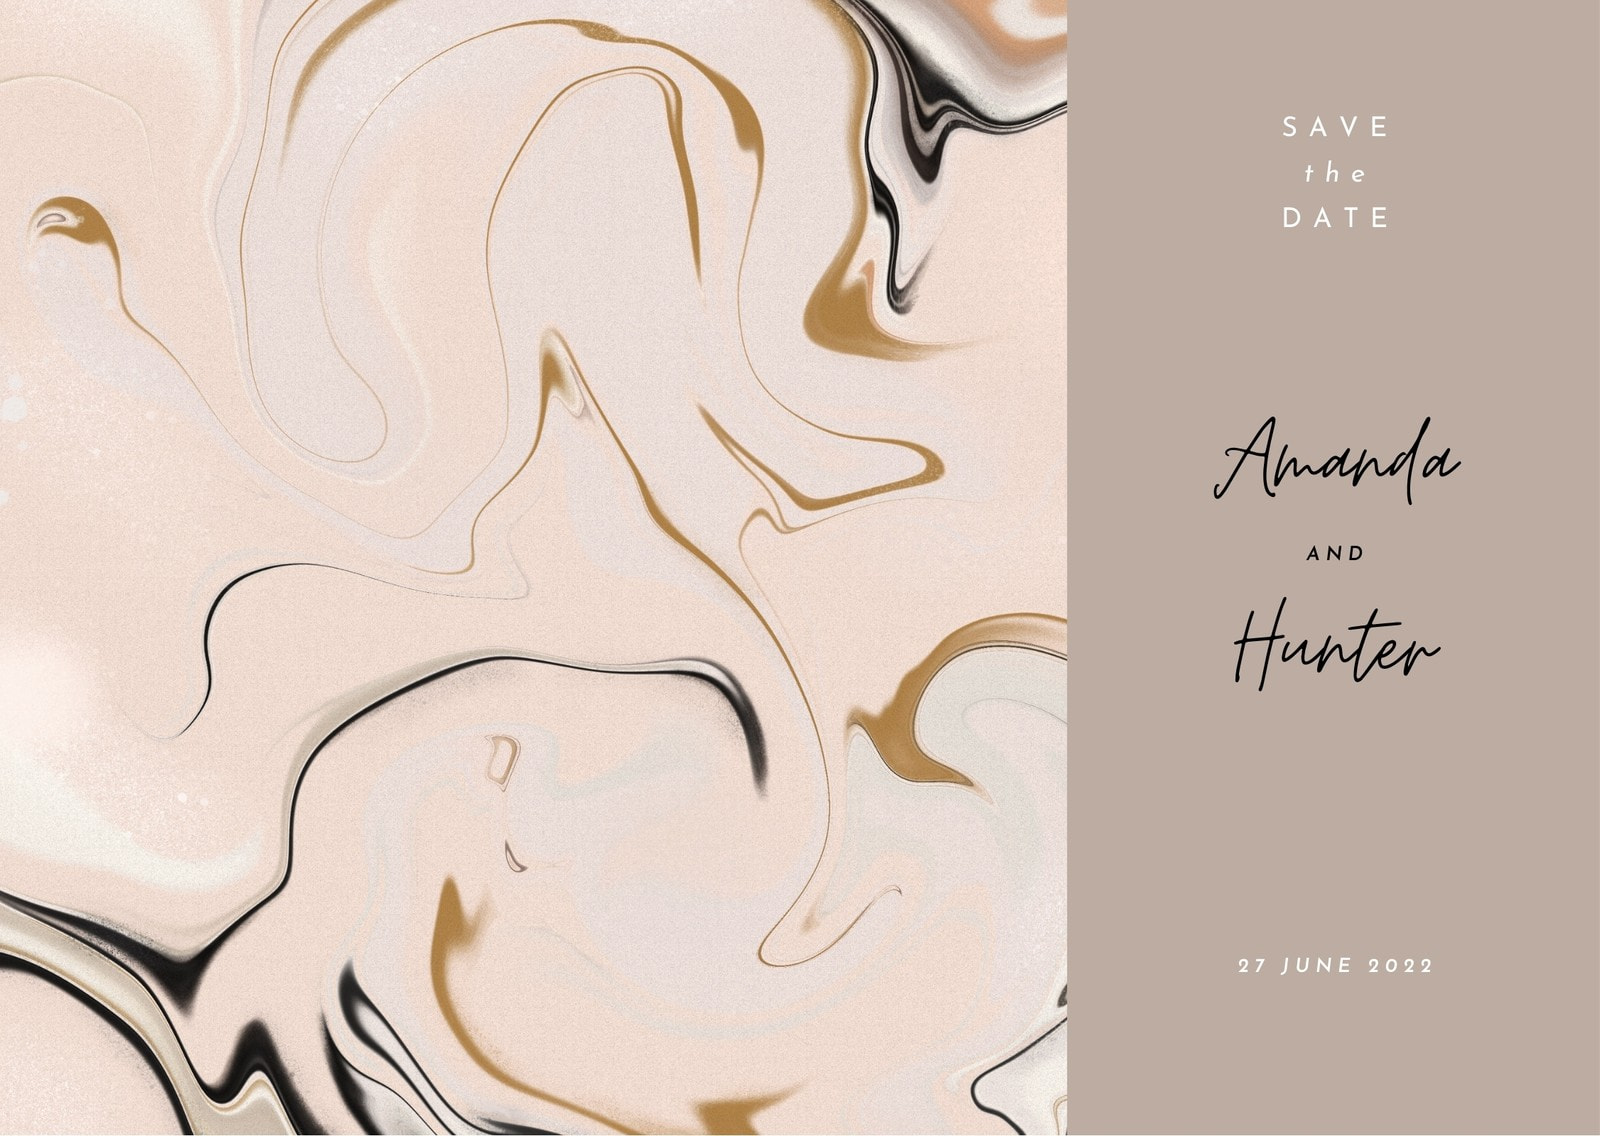 Save the Date Card Template with Modern Abstract Marbling Art